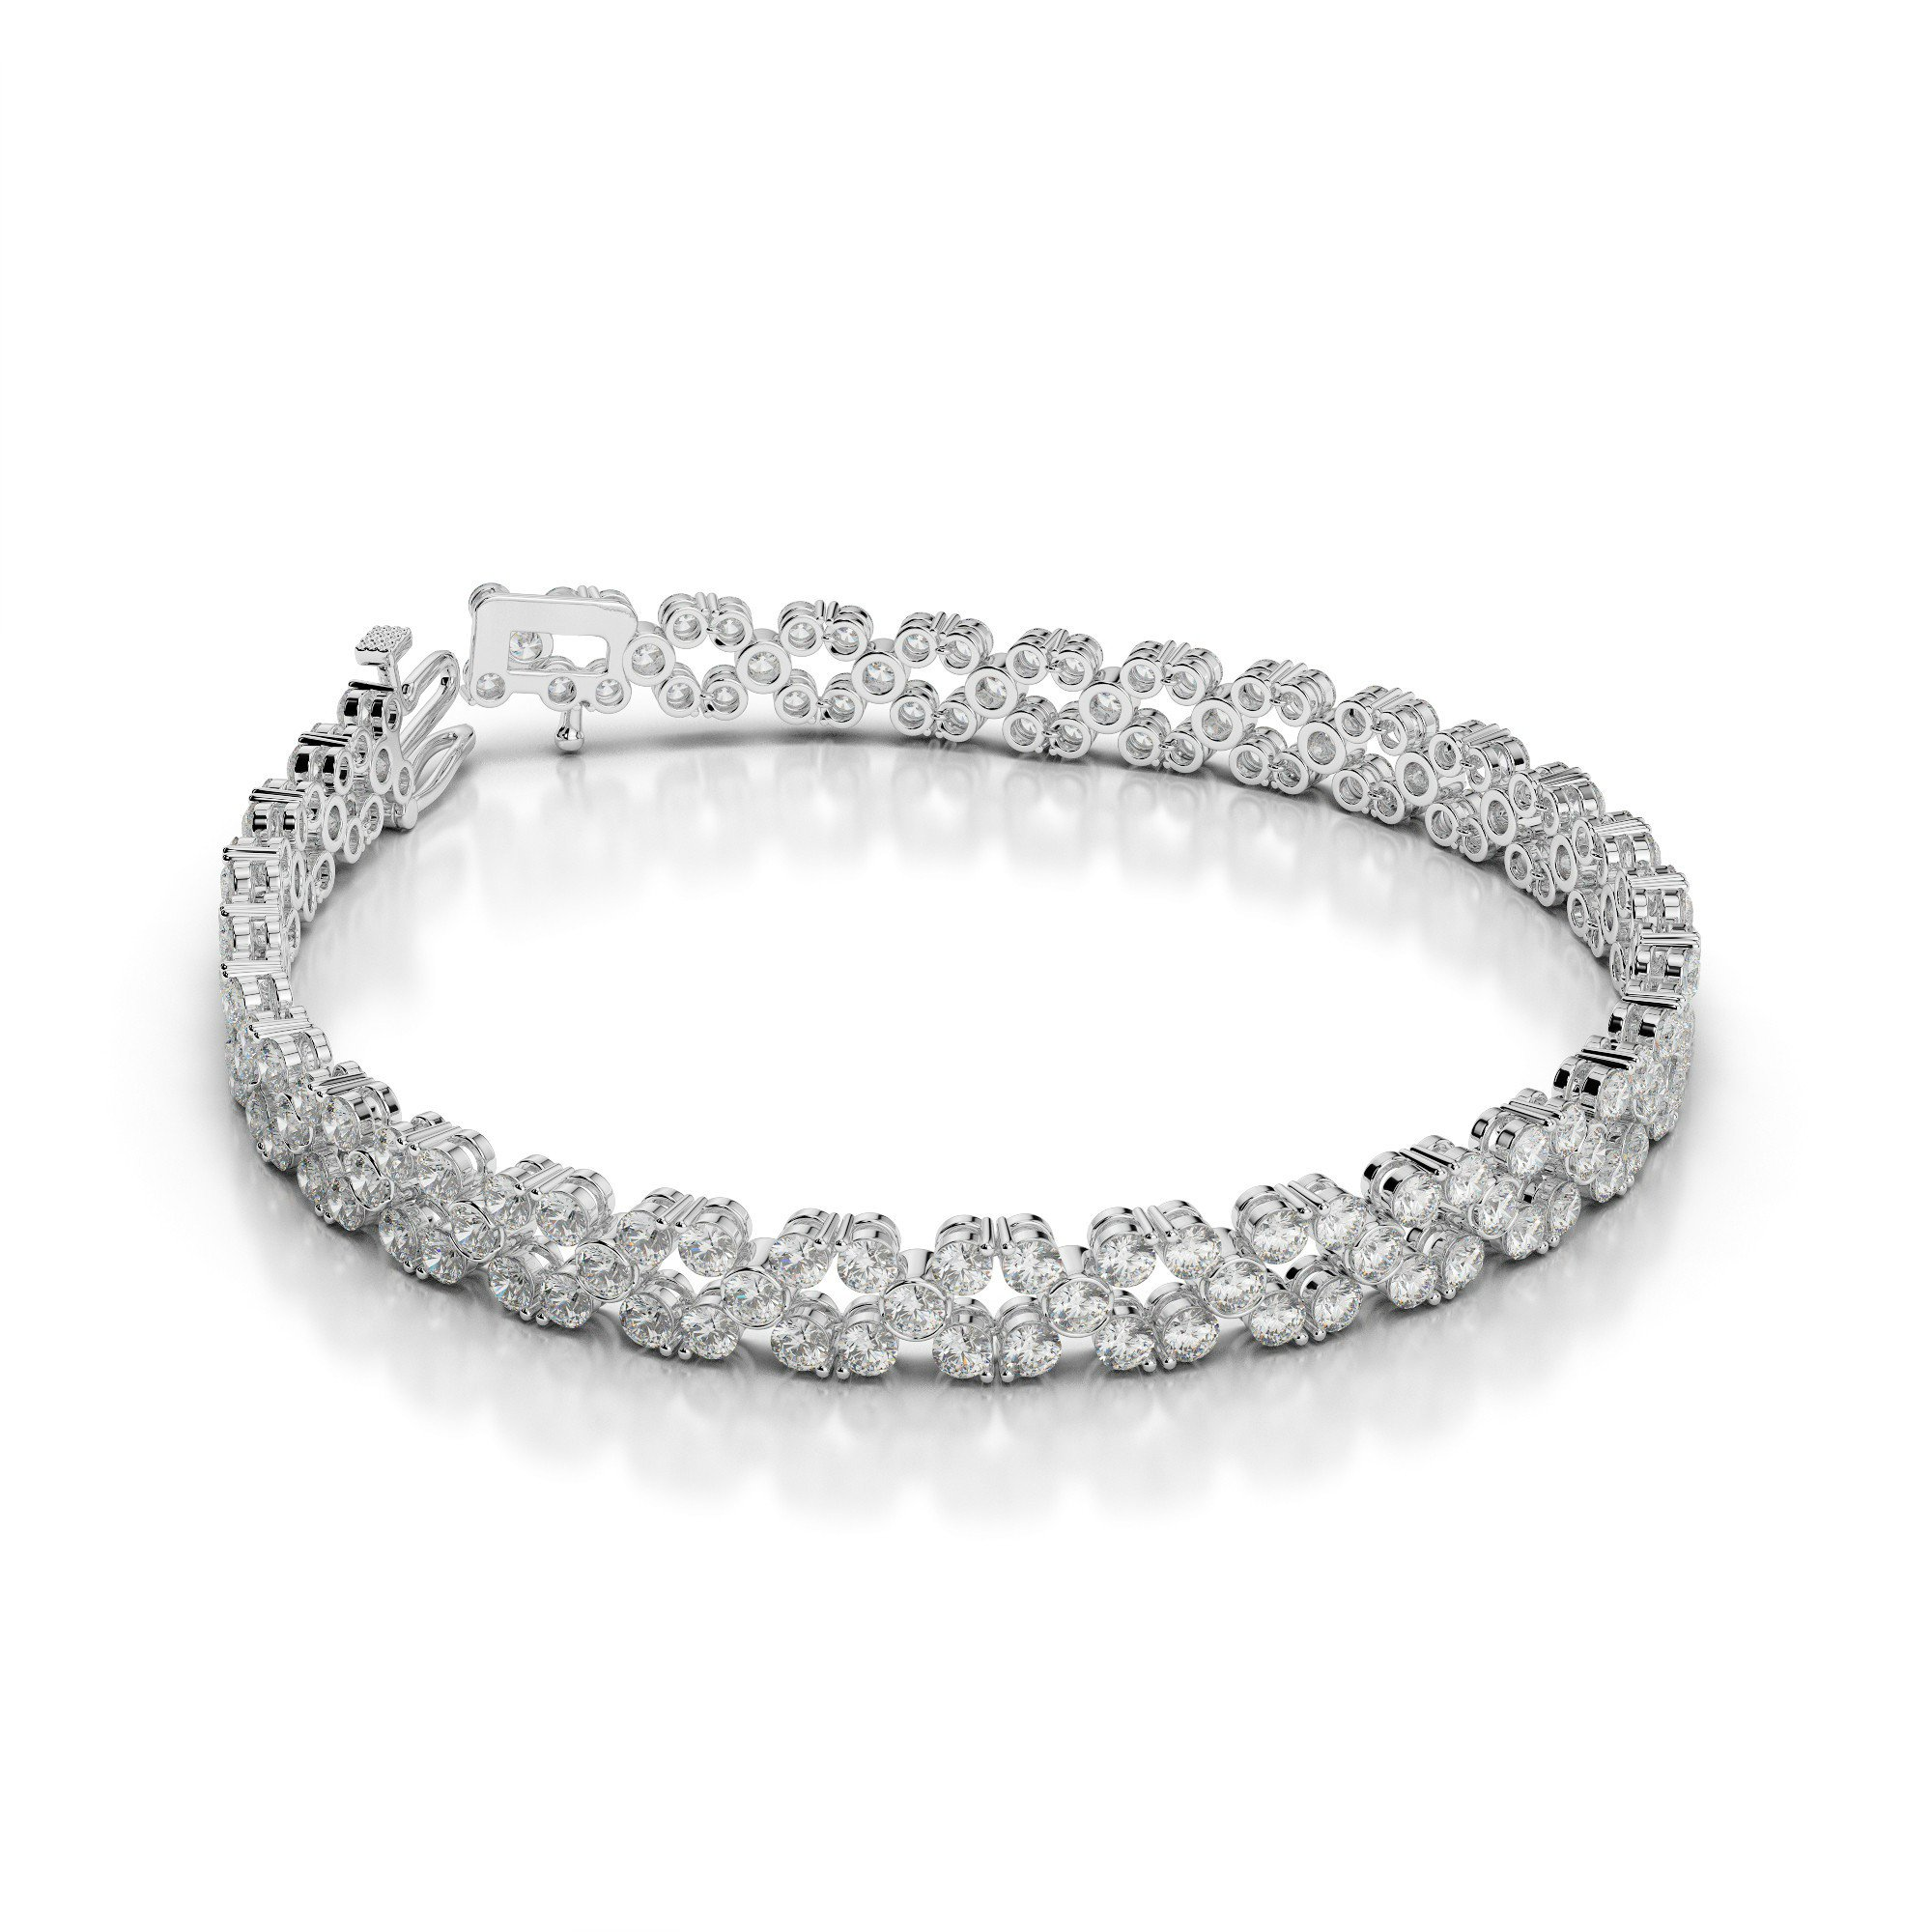 6 Carat Diamond Flower Bracelet